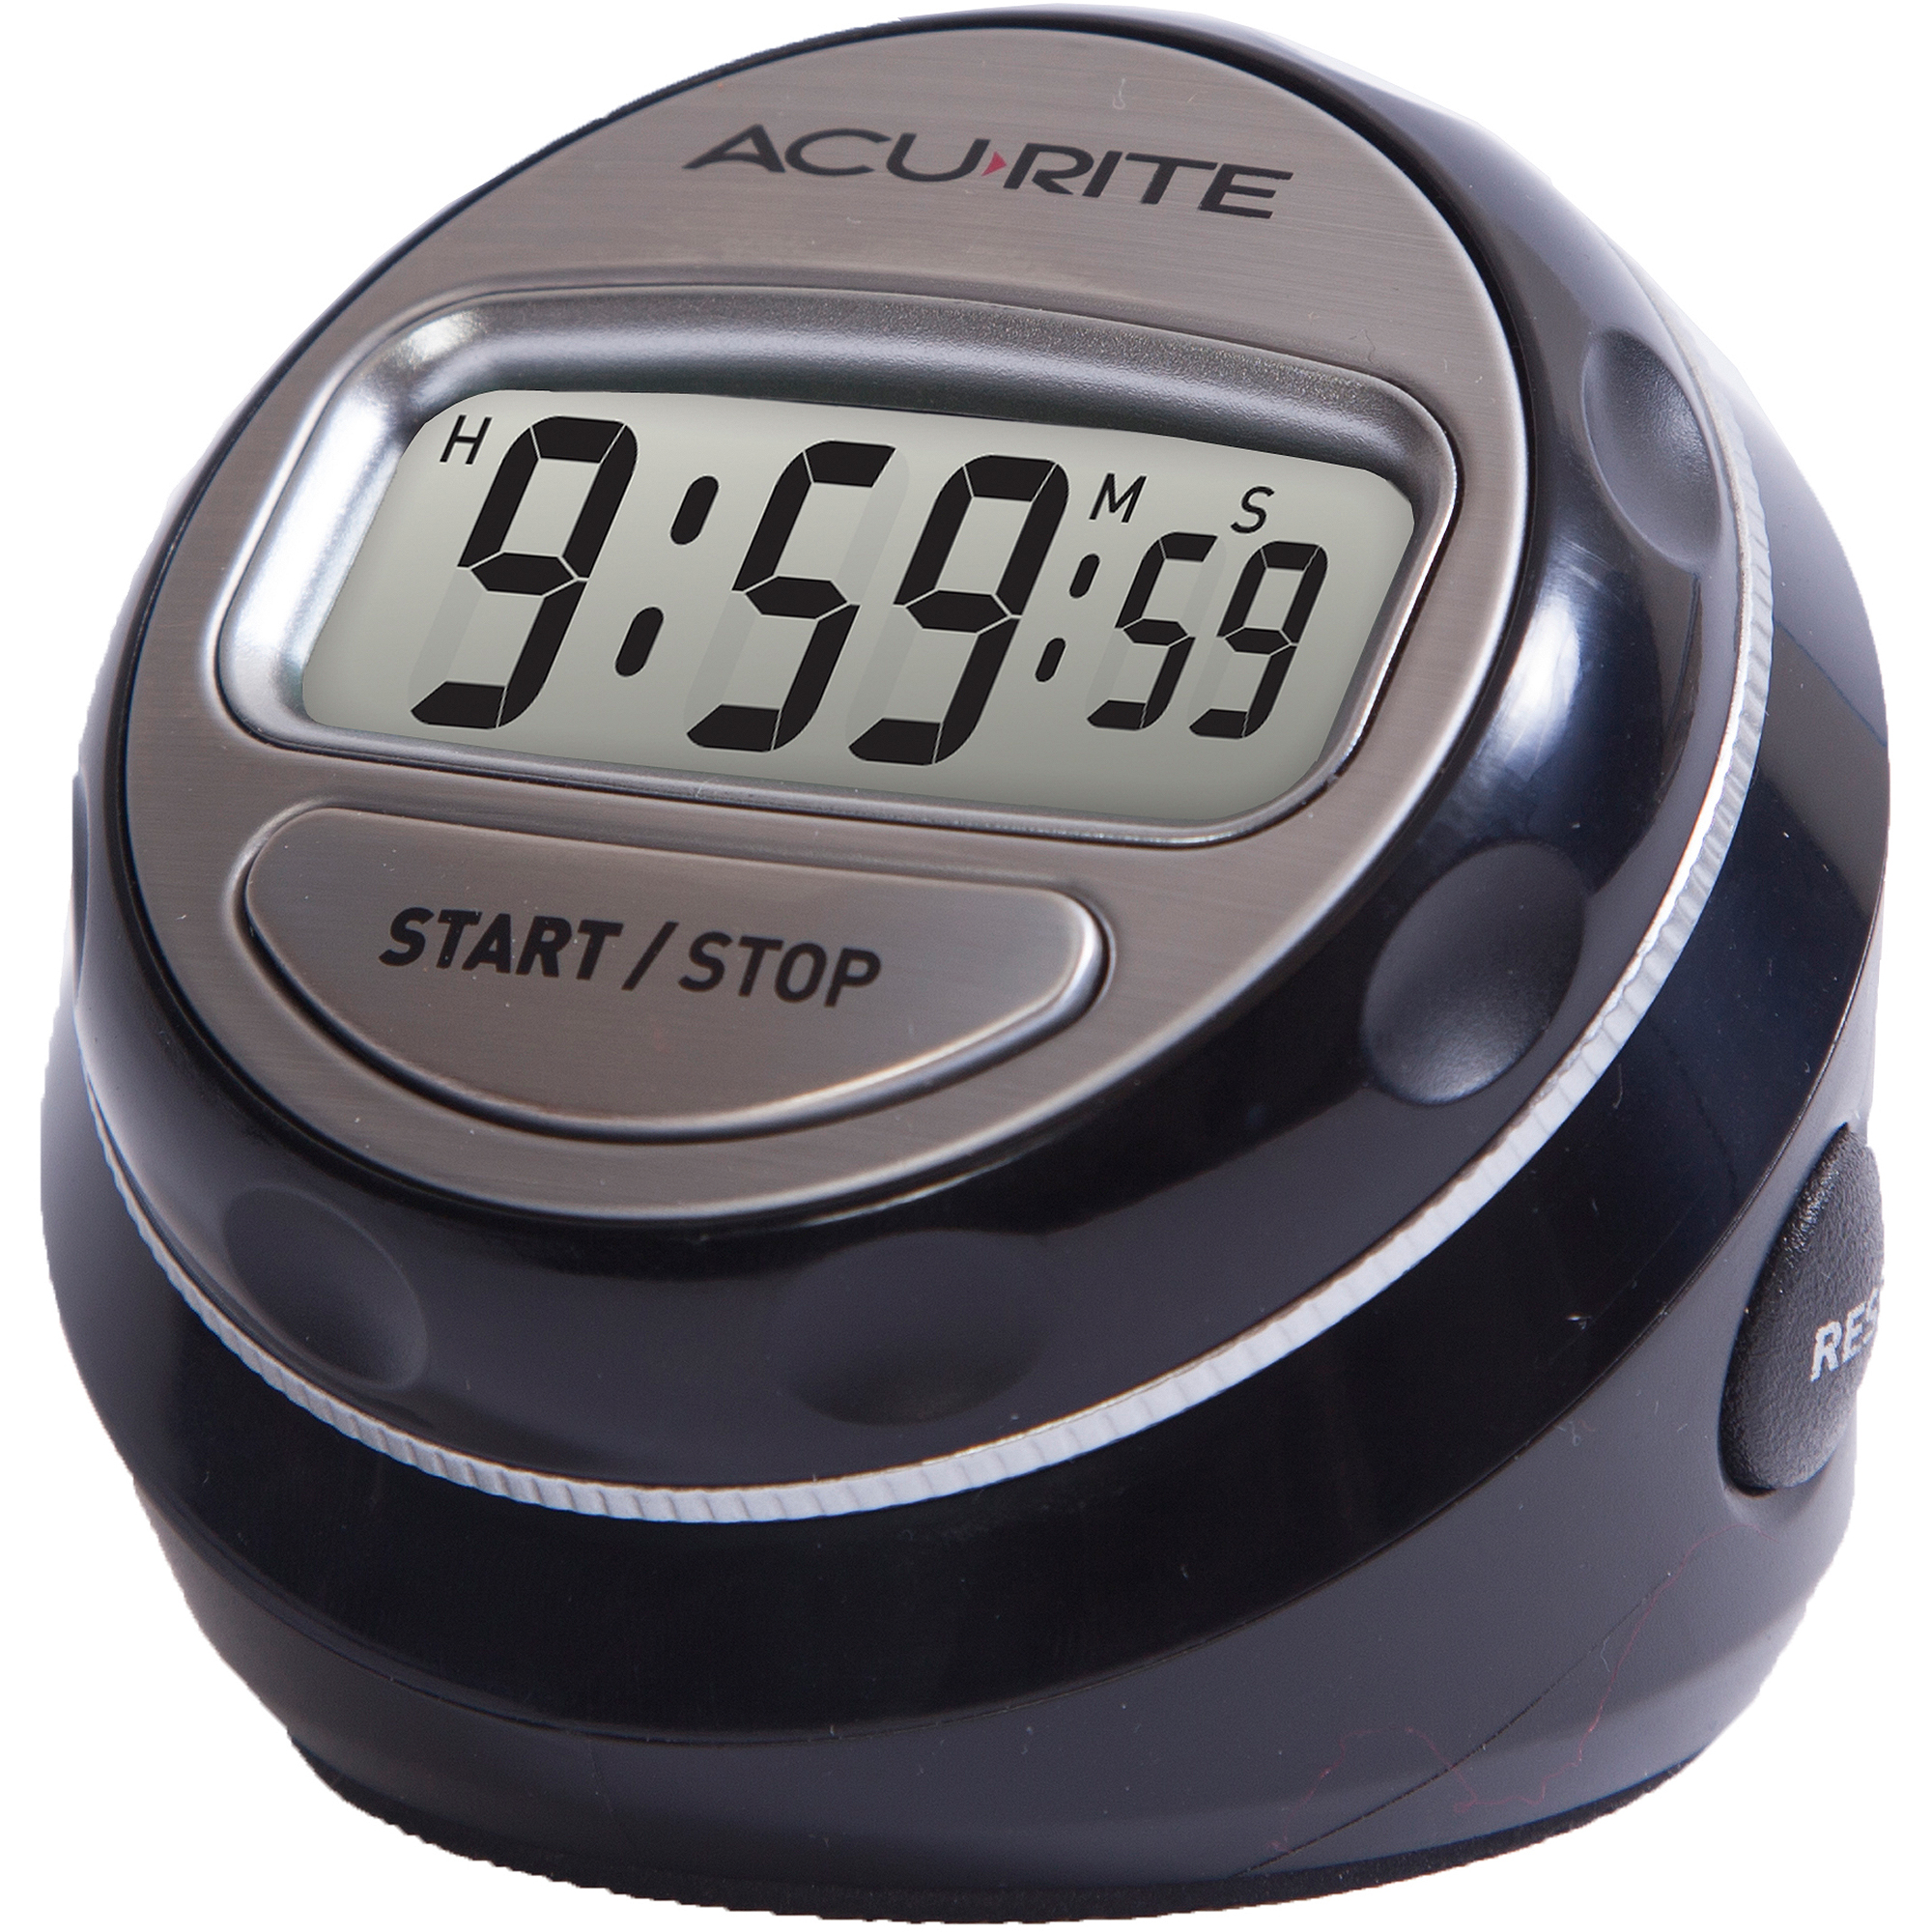 AcuRite Digital Twist Timer